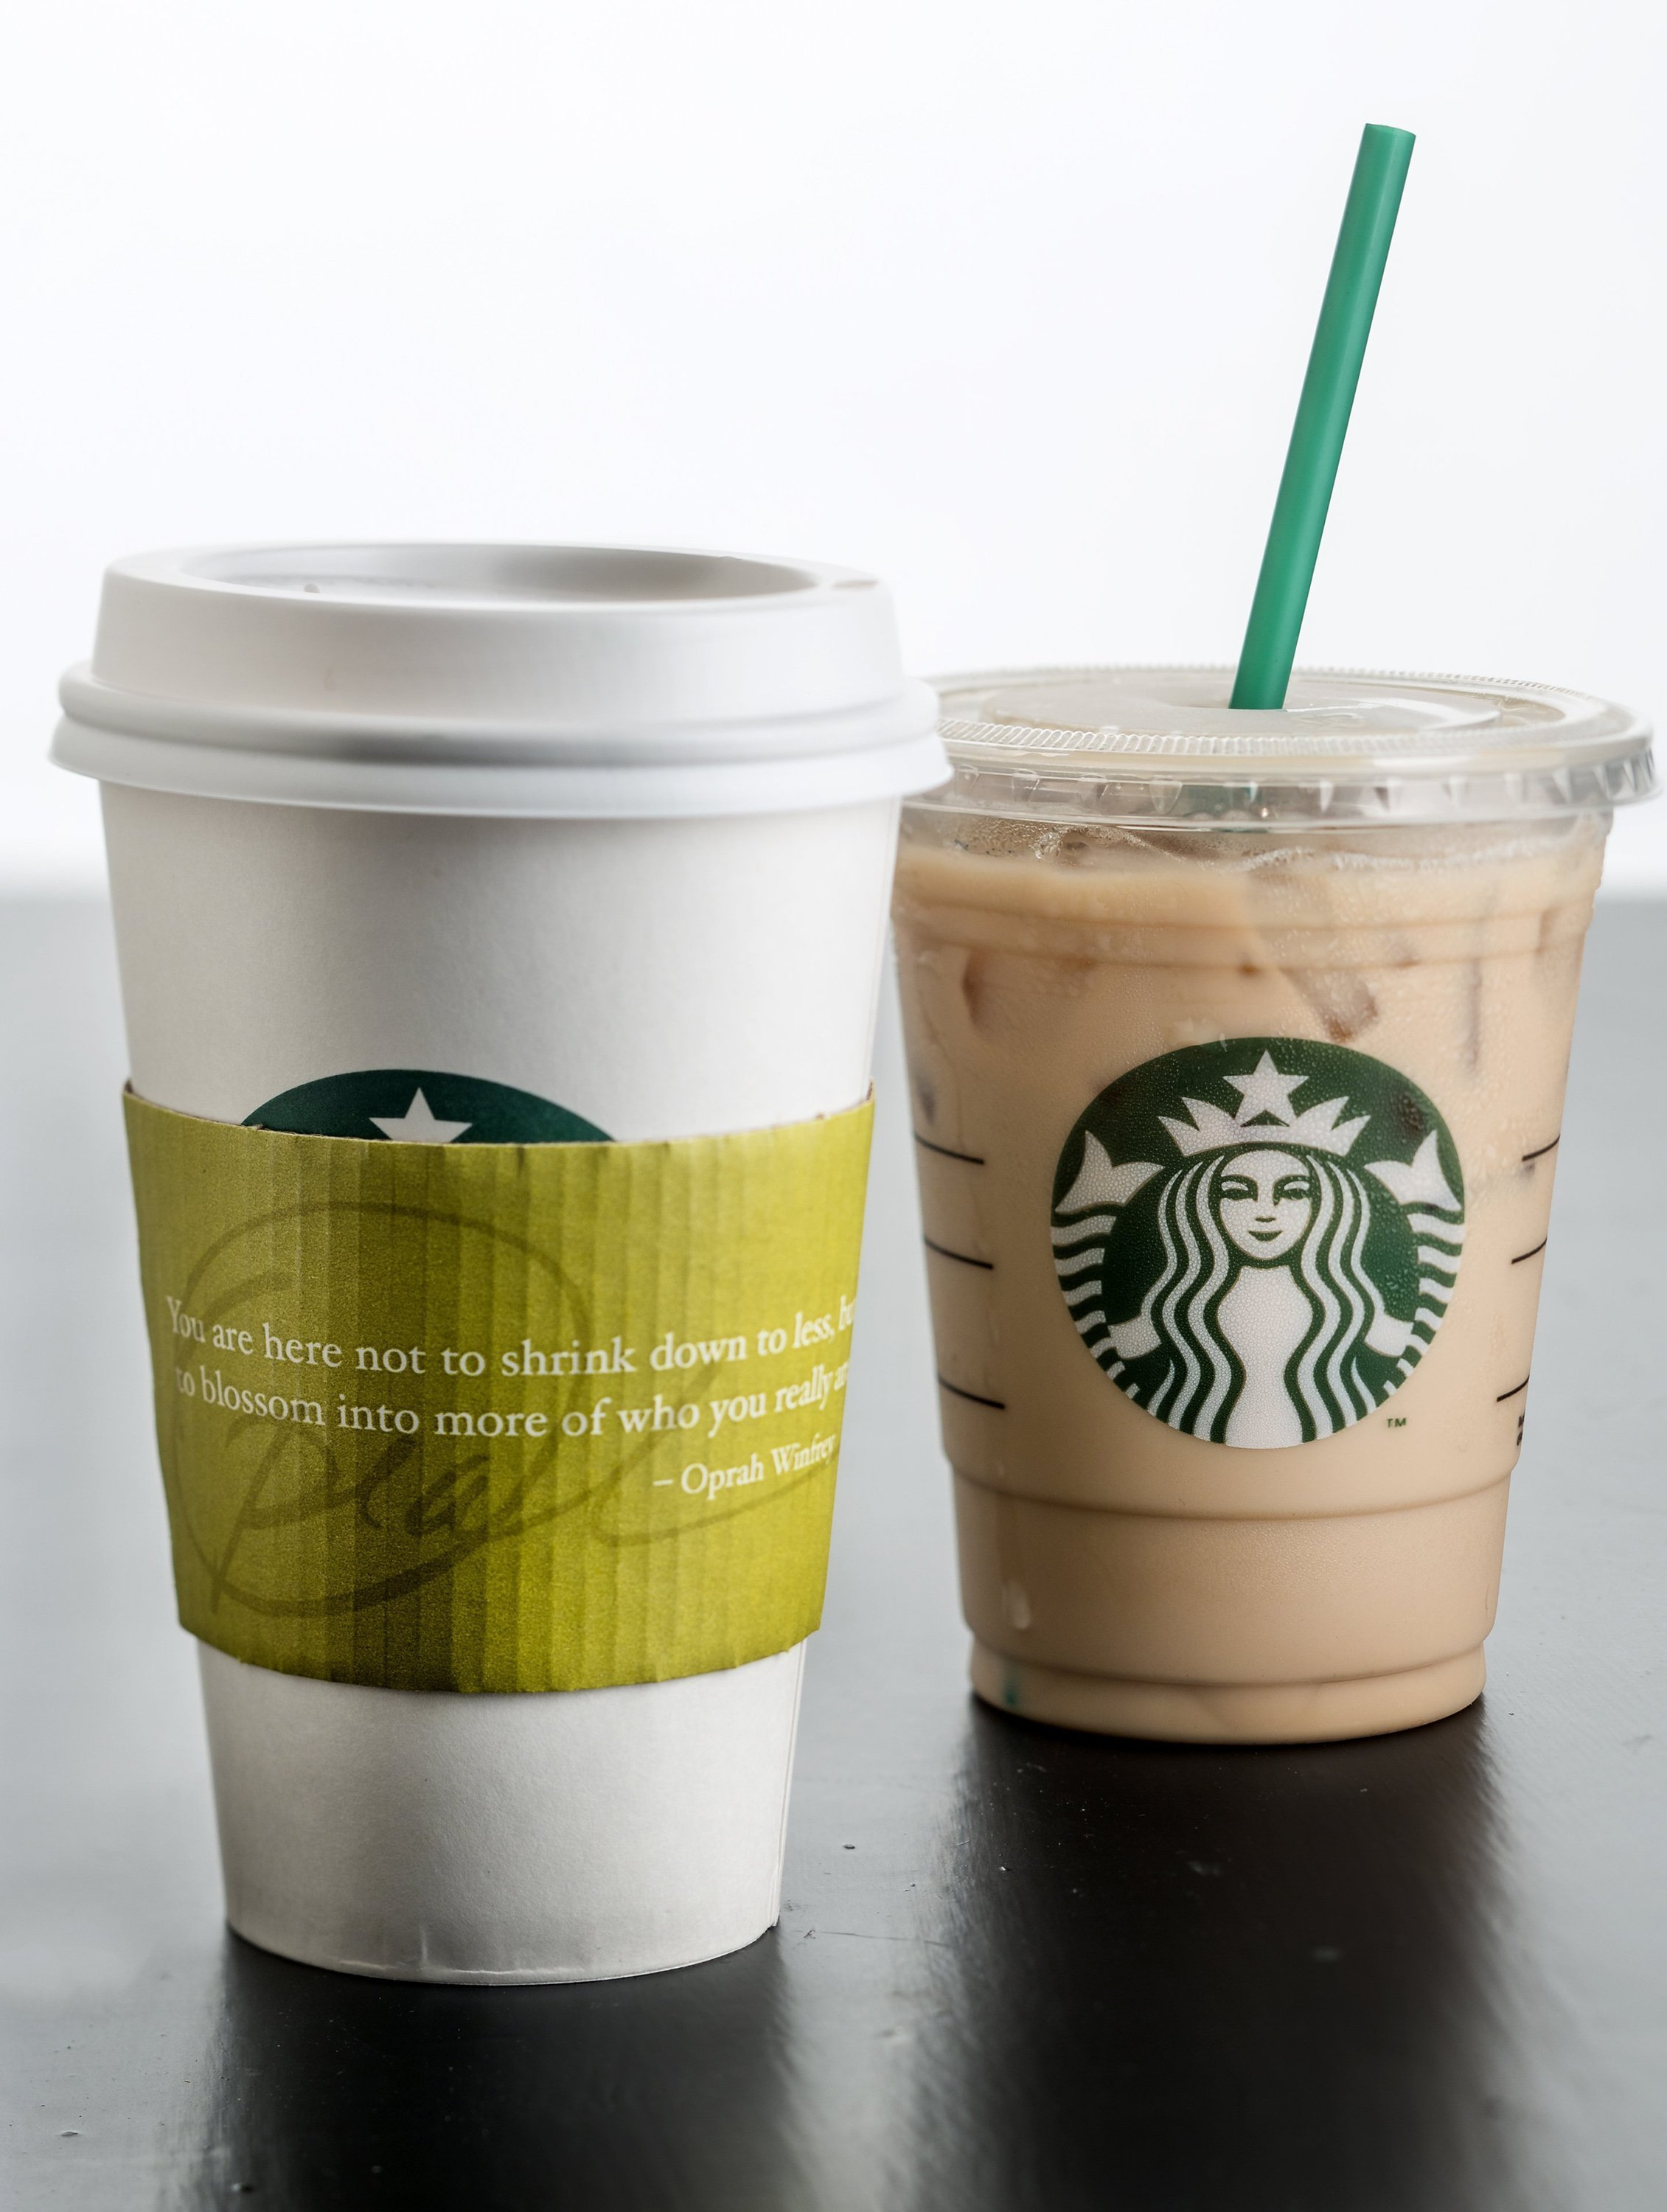 Chai tea from Oprah Winfrey is available in hot and cold servings at Starbucks.